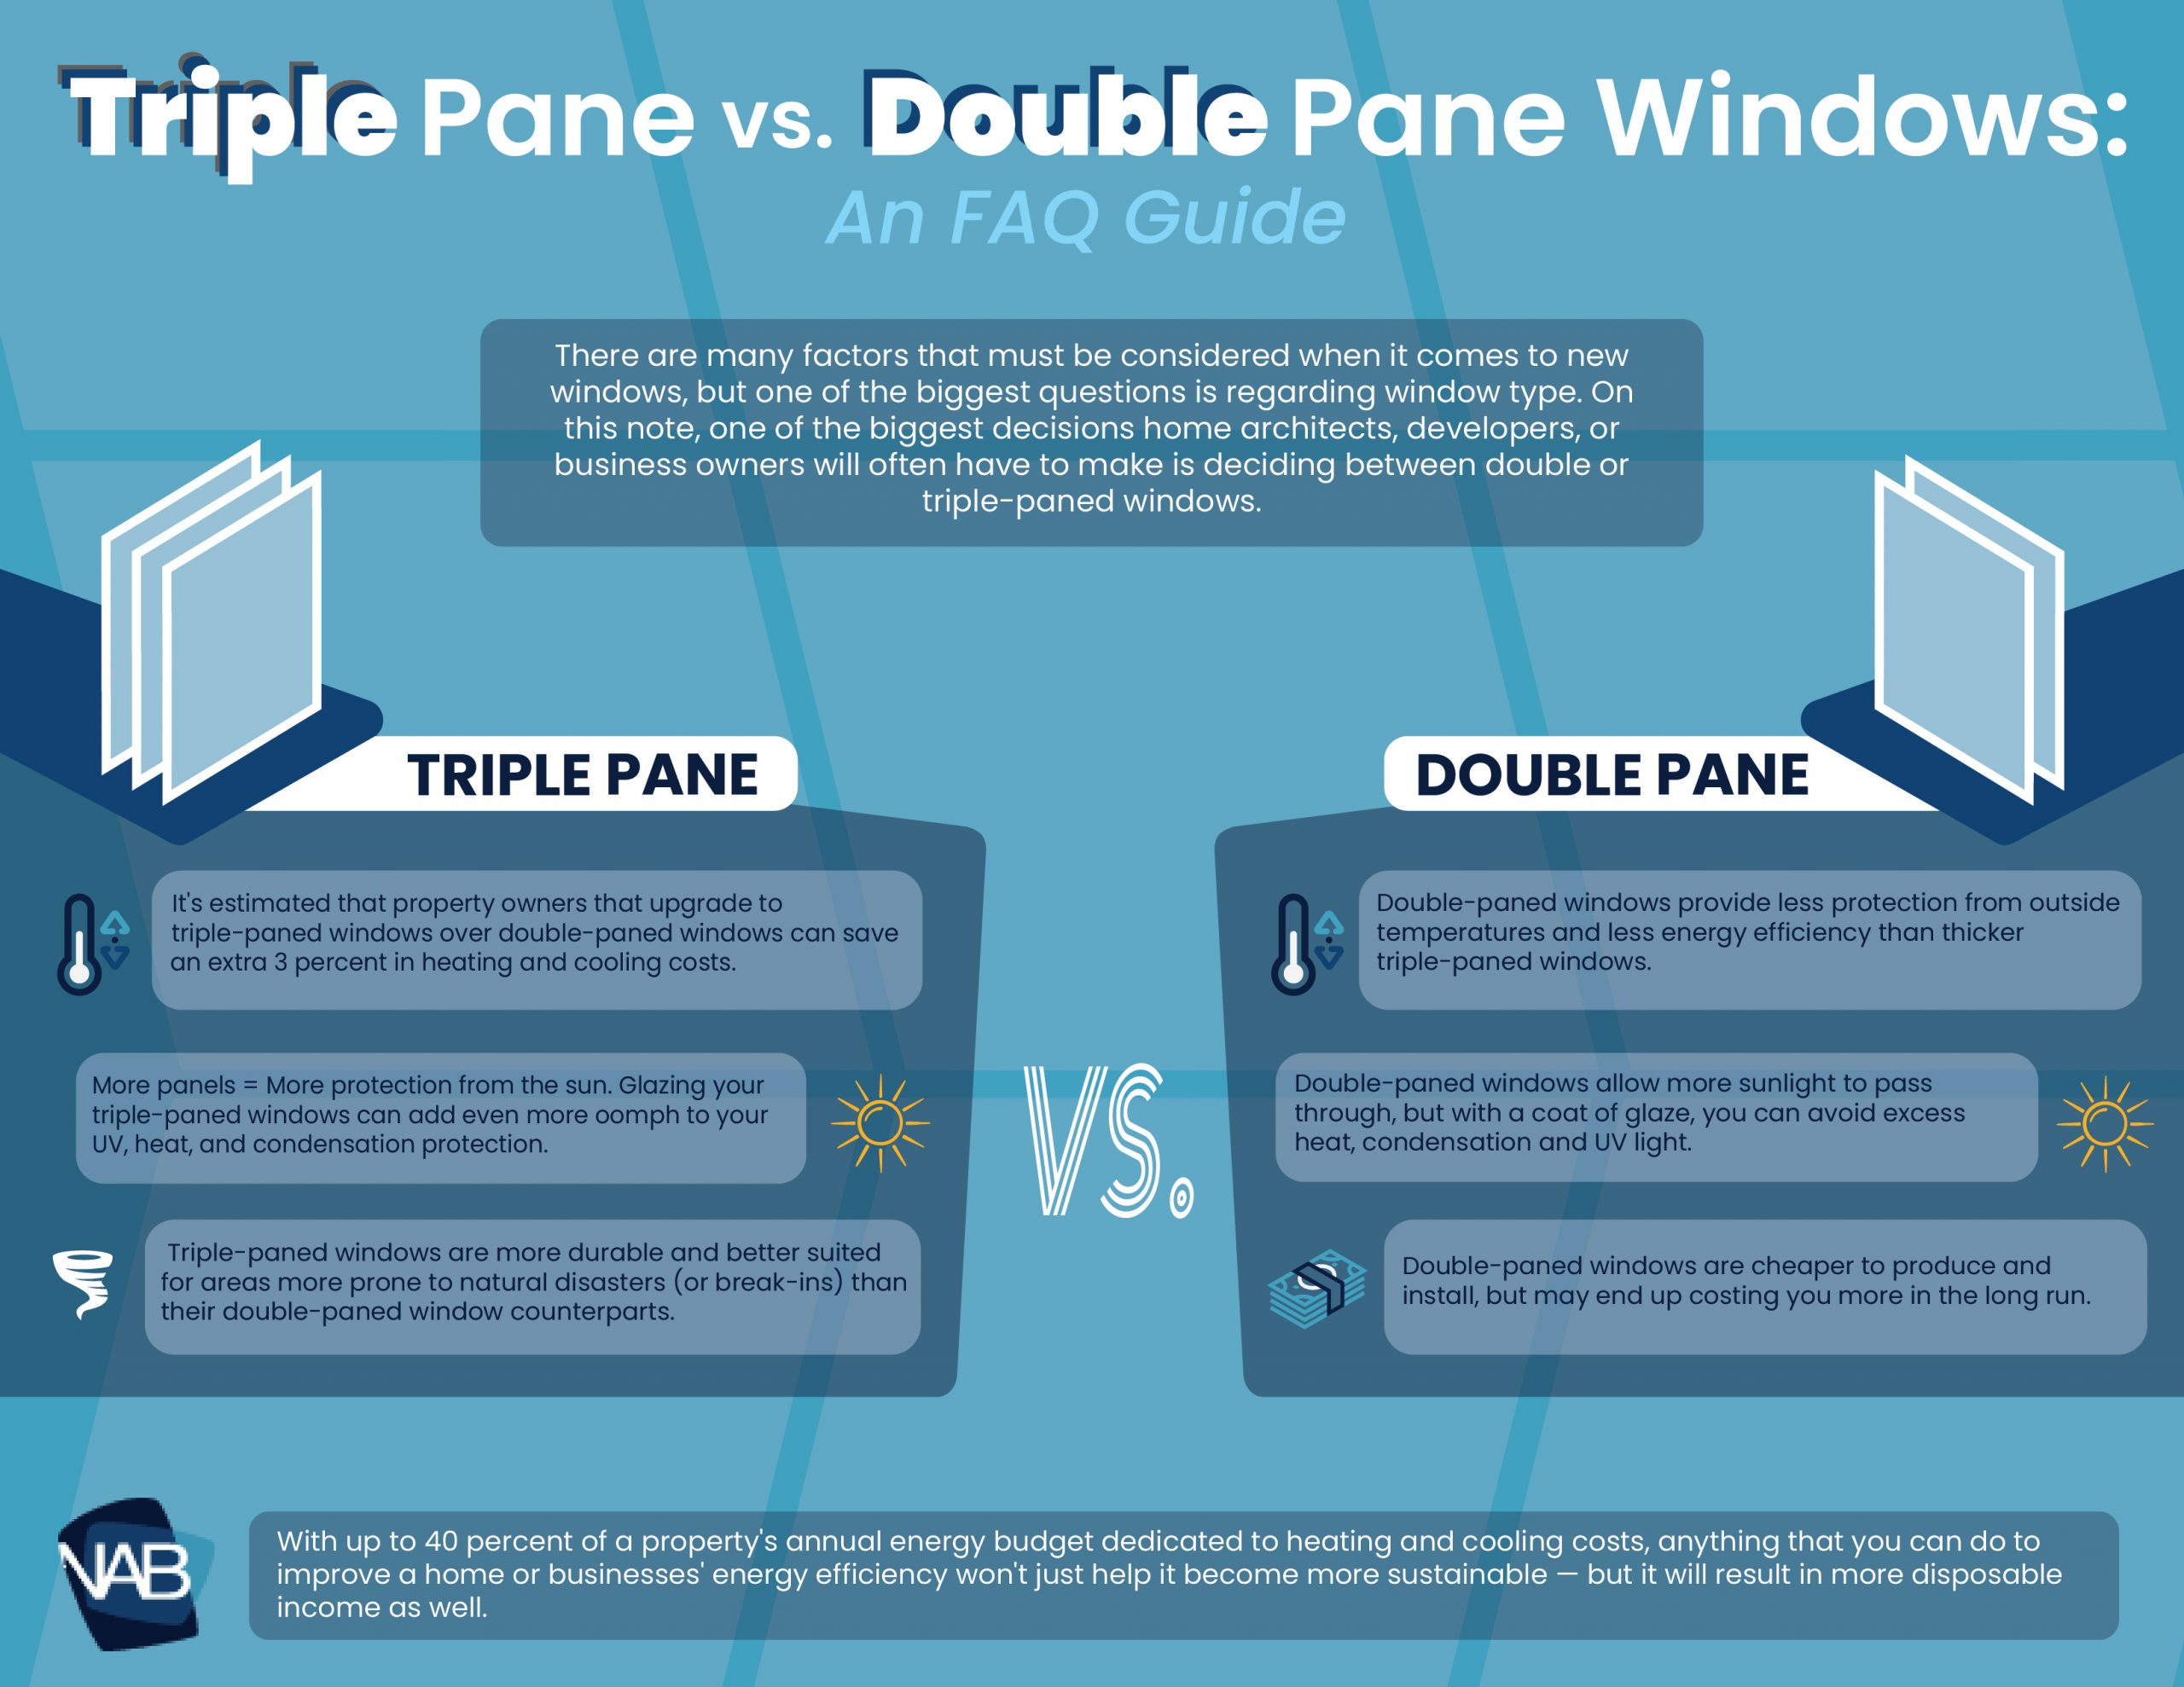 Triple Pane vs Double Pane Windows:  FAQ Guide